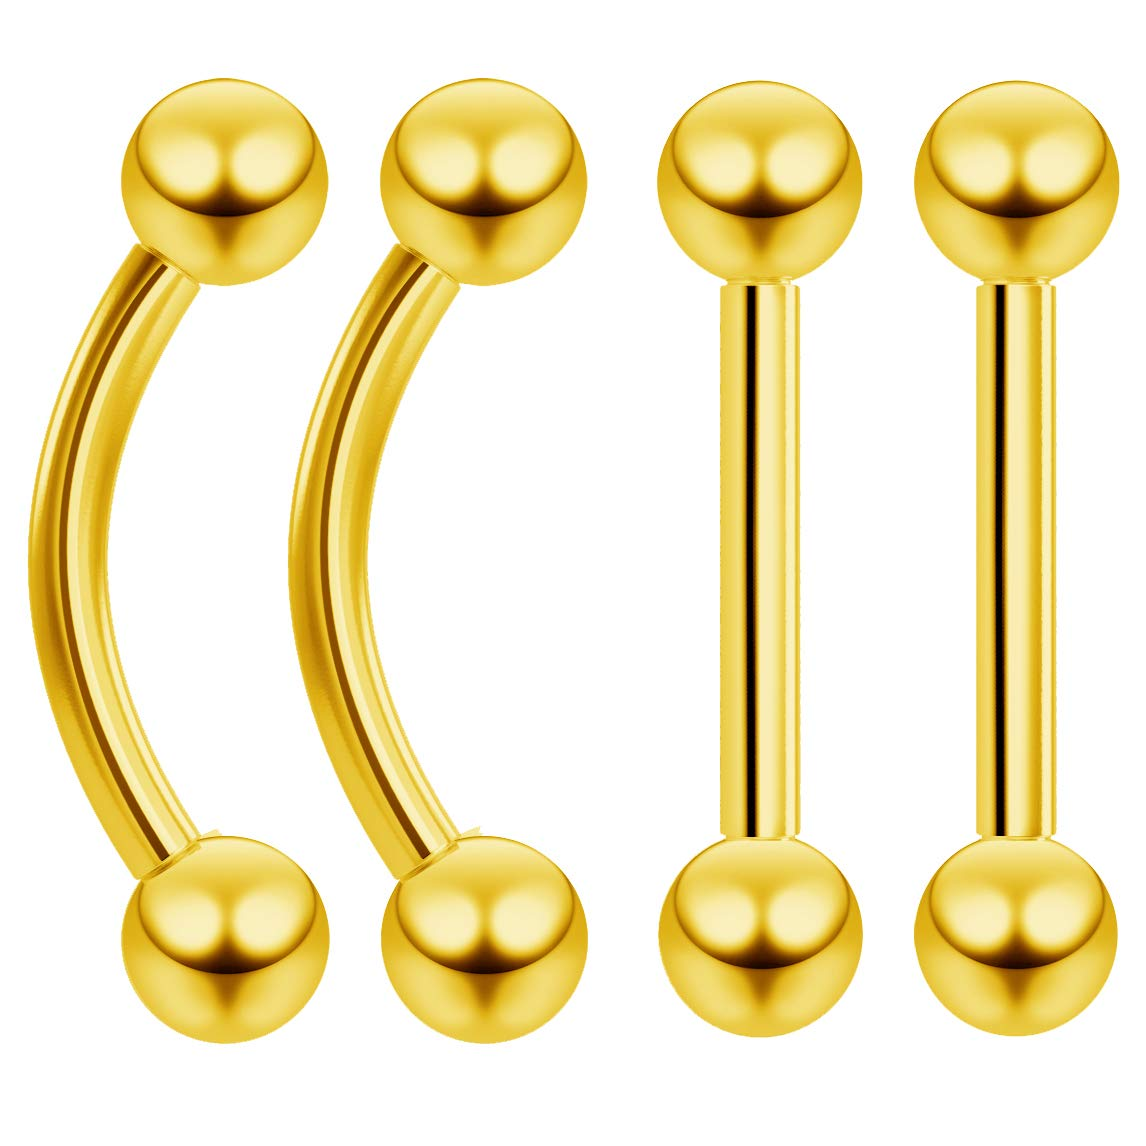 4pc 16g Gold Tragus Barbell Cartilage Gauge Earring for Women Triple Forward Helix Piercing Jewelry